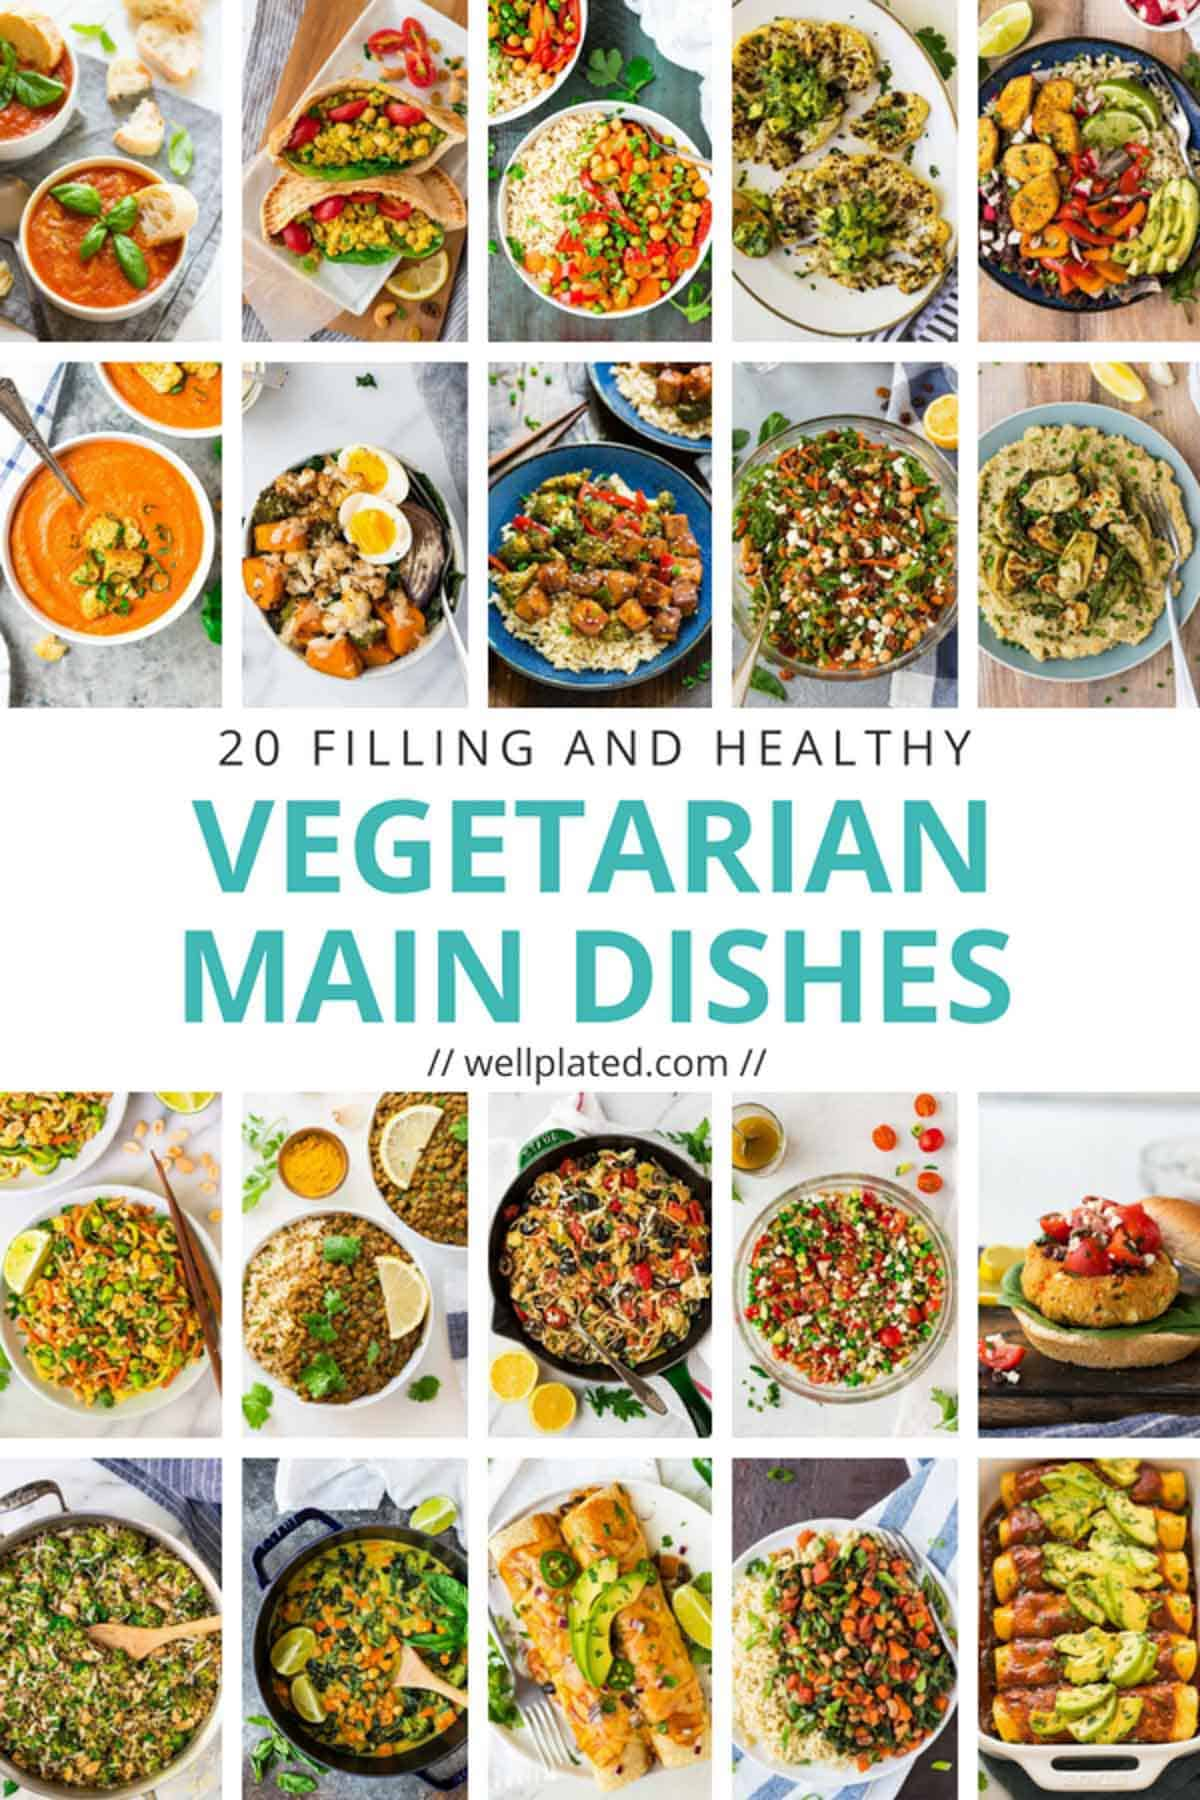 20 of the best healthy vegetarian dinner recipes. So satisfying and delicious, you won't miss the meat at dinner or any other meal! List includes soups, salads, pastas, stir fry, curry, and more! #wellplated #vegetarian #maindis